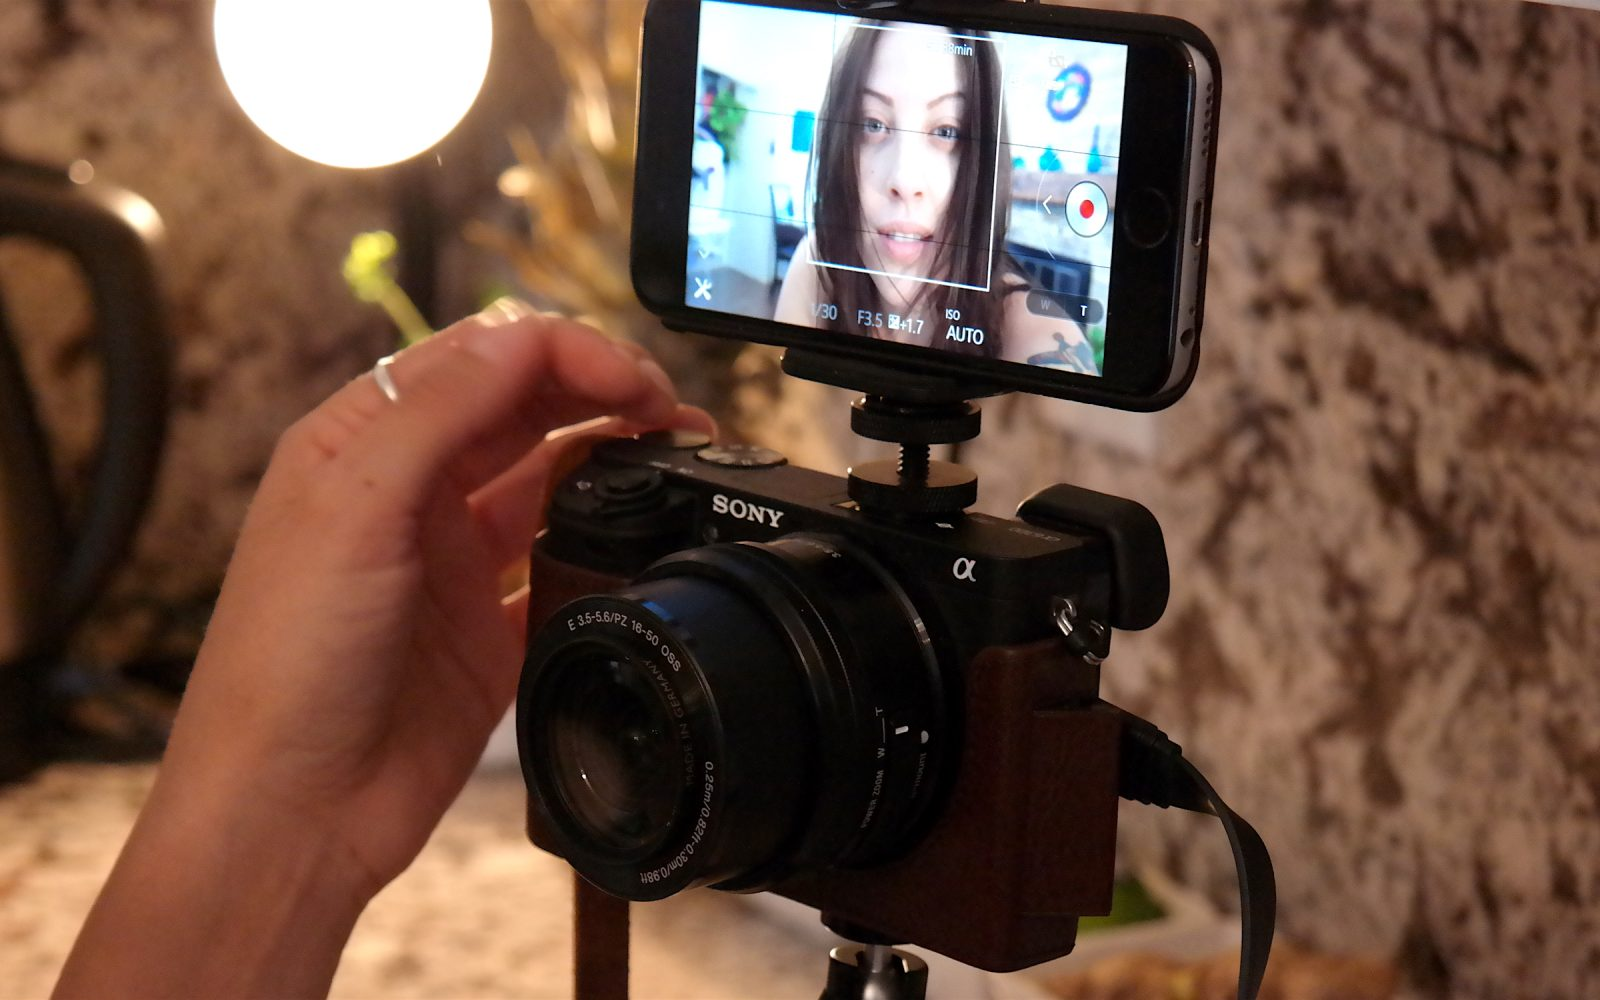 How-To: Make Sony's a6300 a vlogging camera by using an